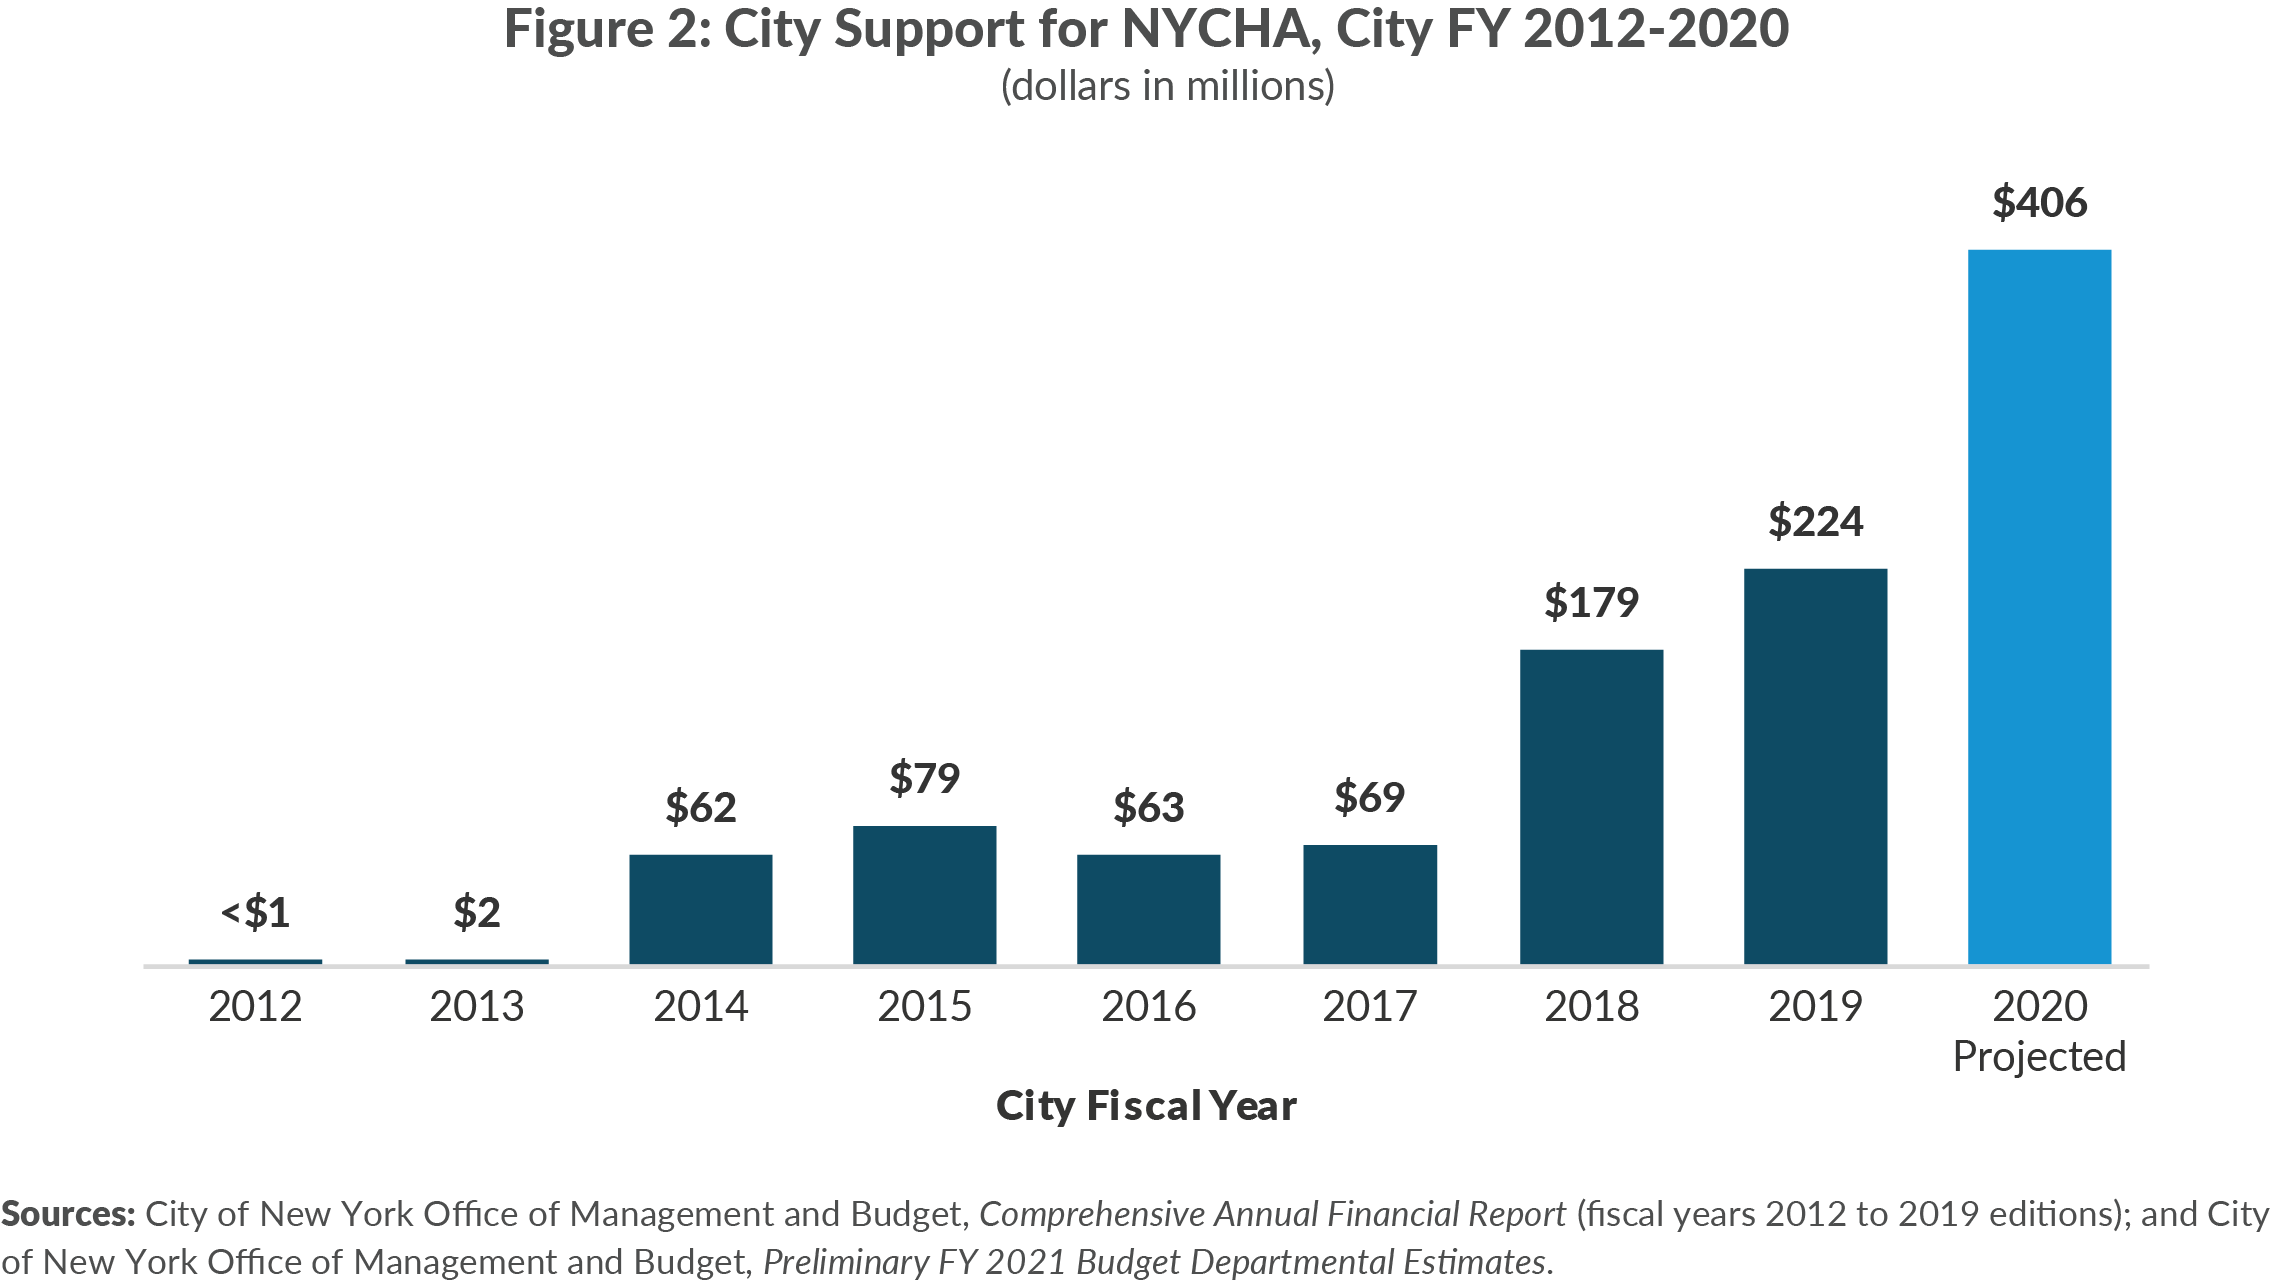 Figure 2. City Support for NYCHA, City FY 2012-2020 (dollars in millions)